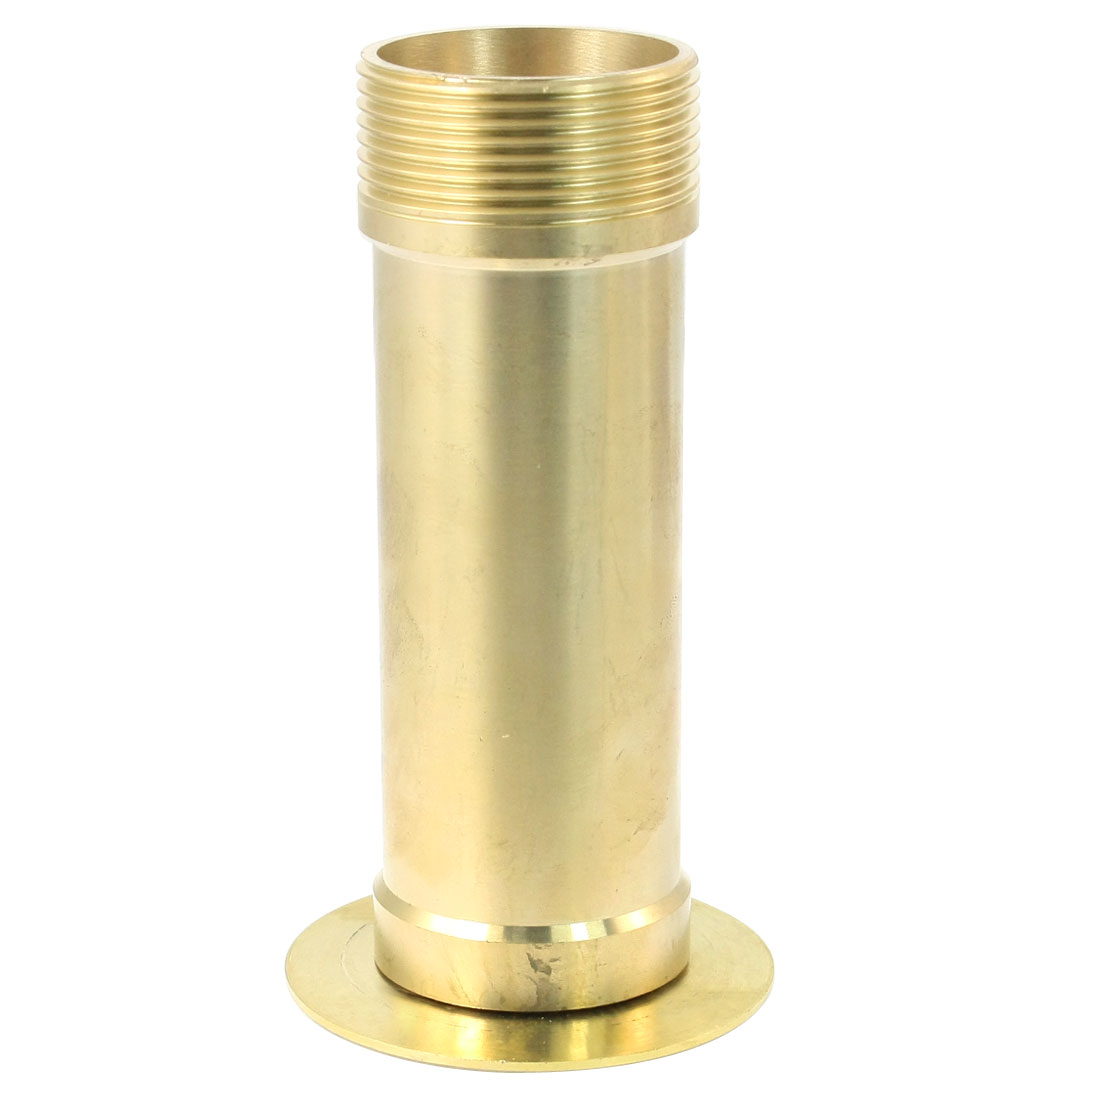 Garden Fountain 46mm Male Thread Dia Waterfall Water Spray Nozzle Brass Tone